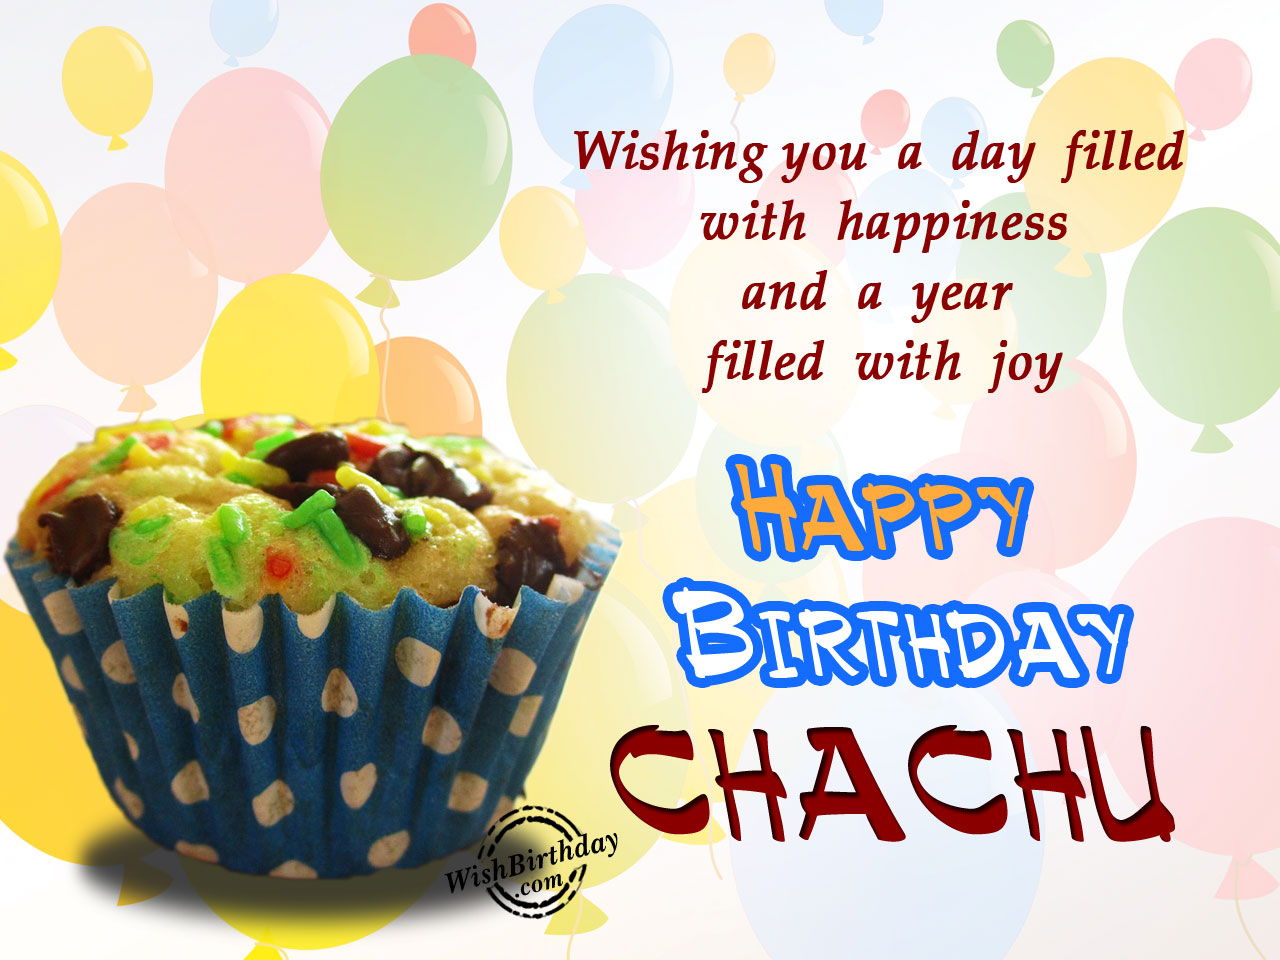 birthday card for chachu ; Your-day-filled-with-happiness-chachu